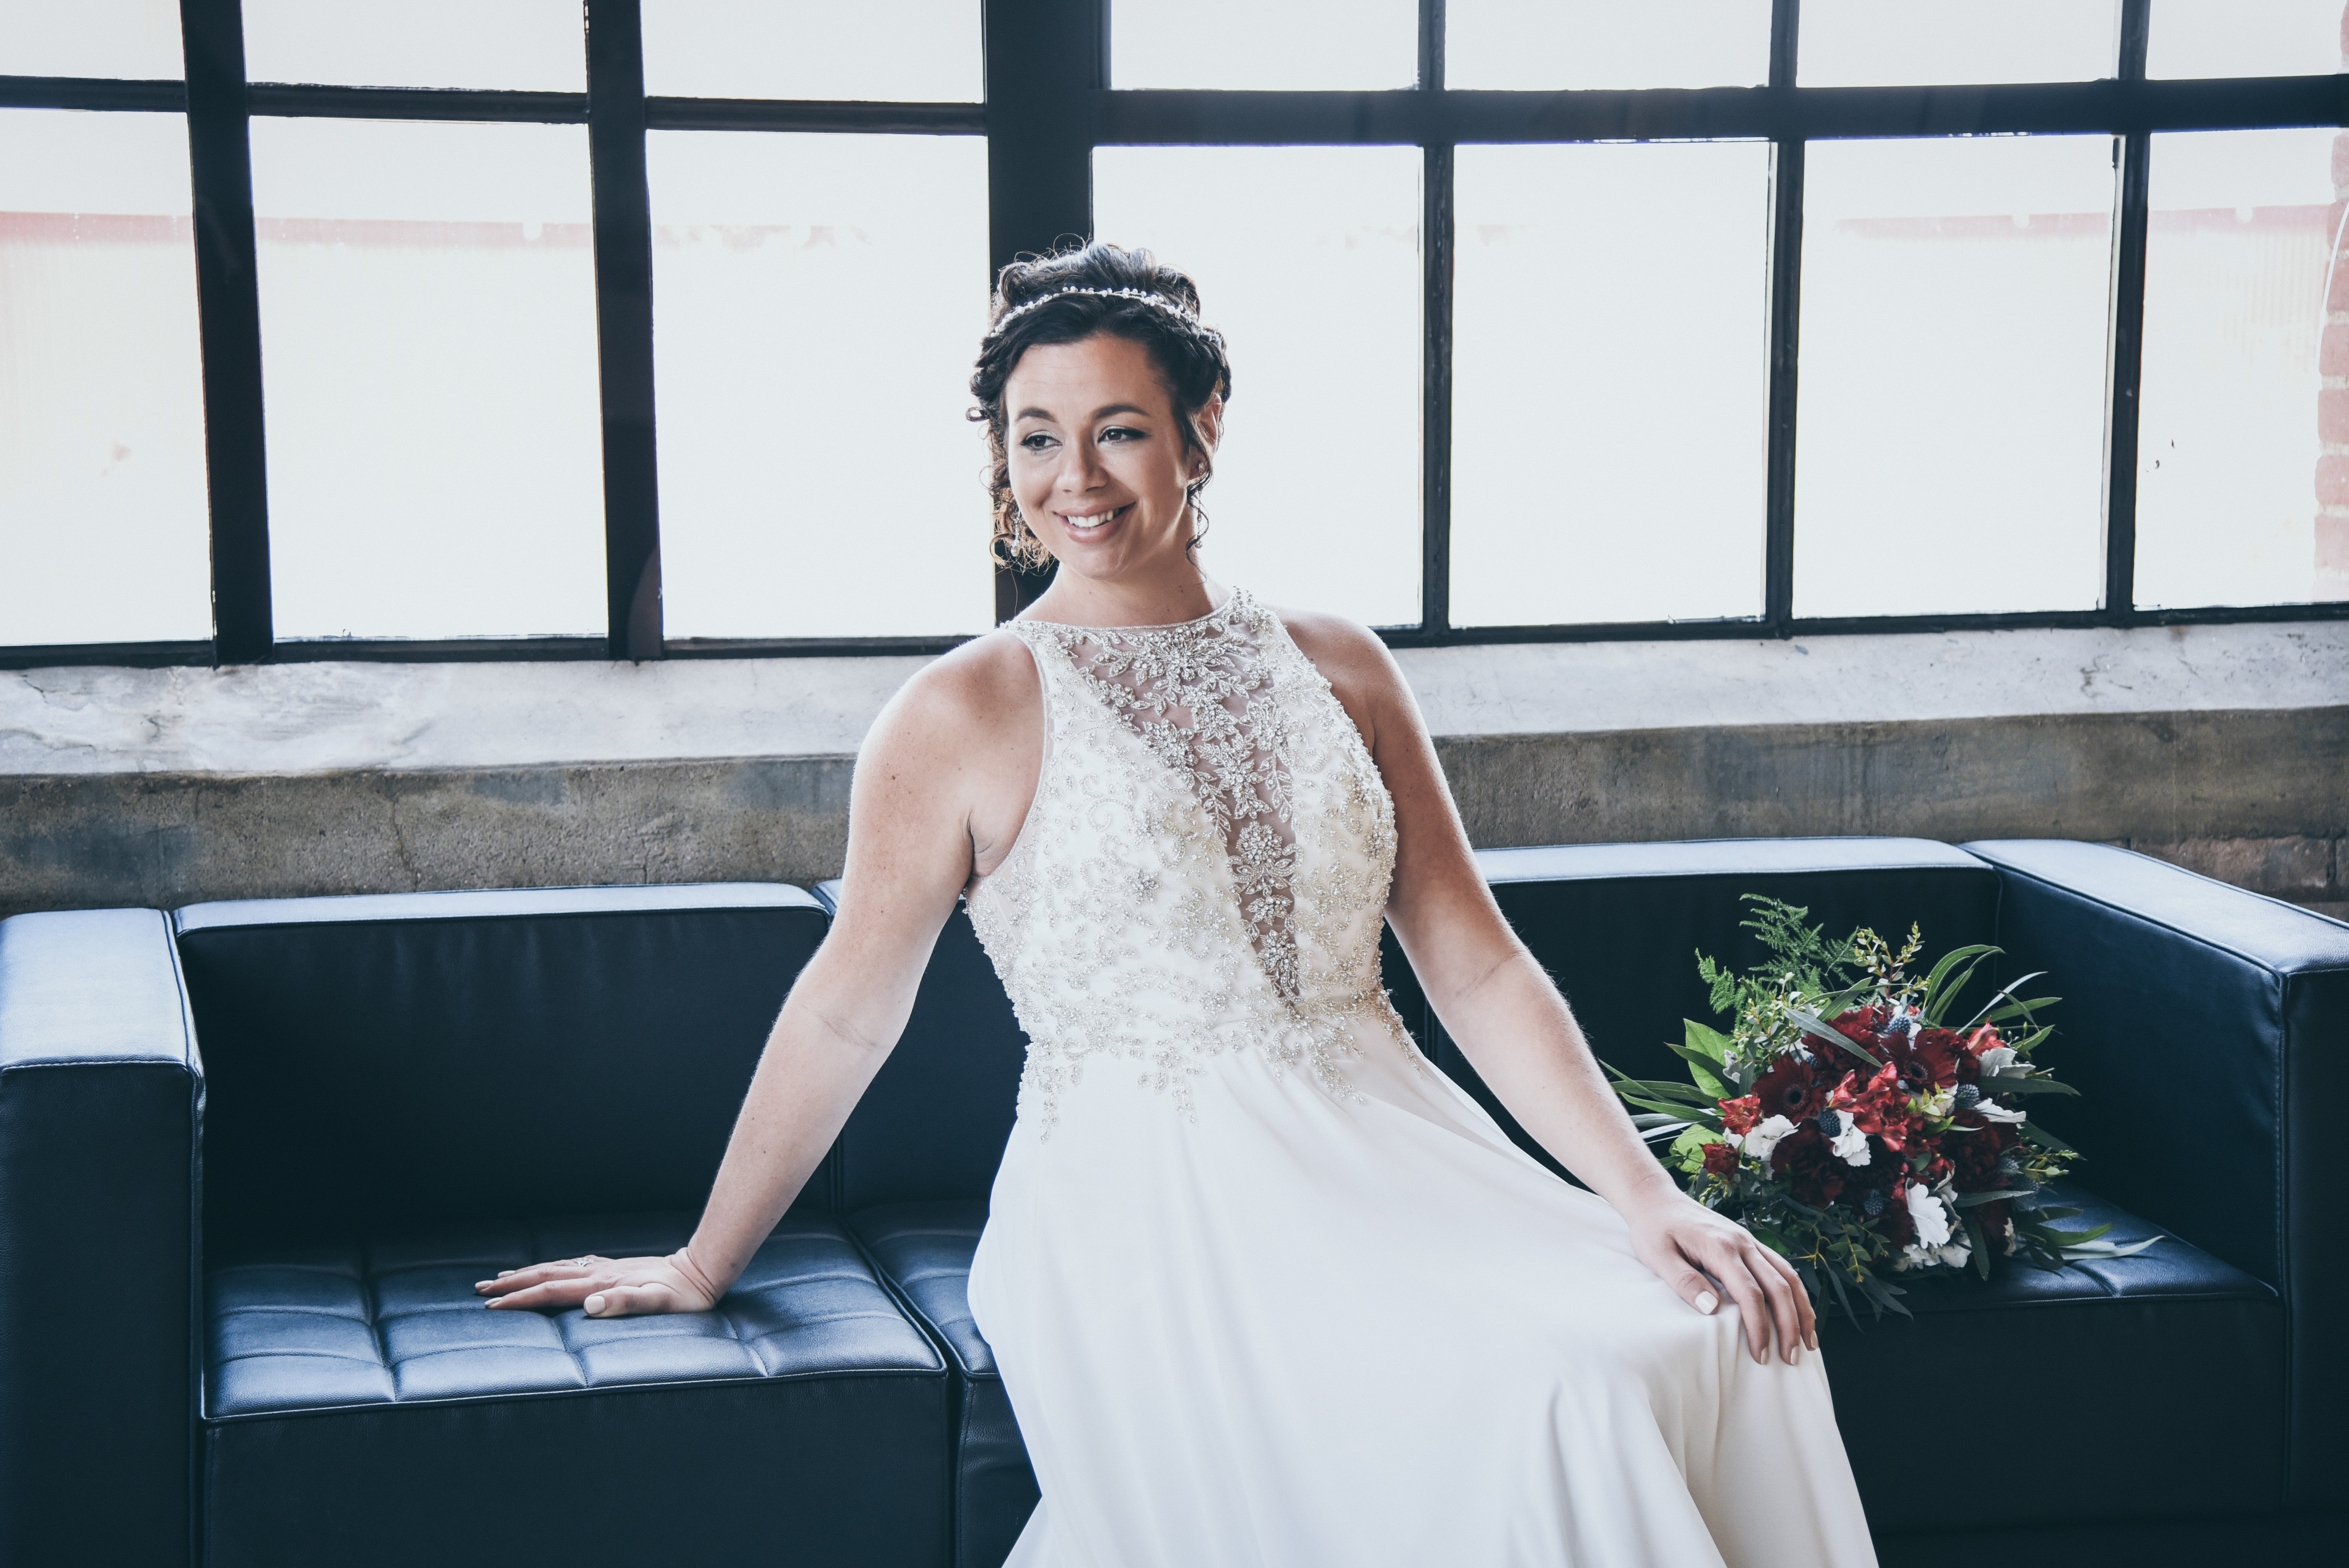 Bride sitting on a black couch in front of a large window